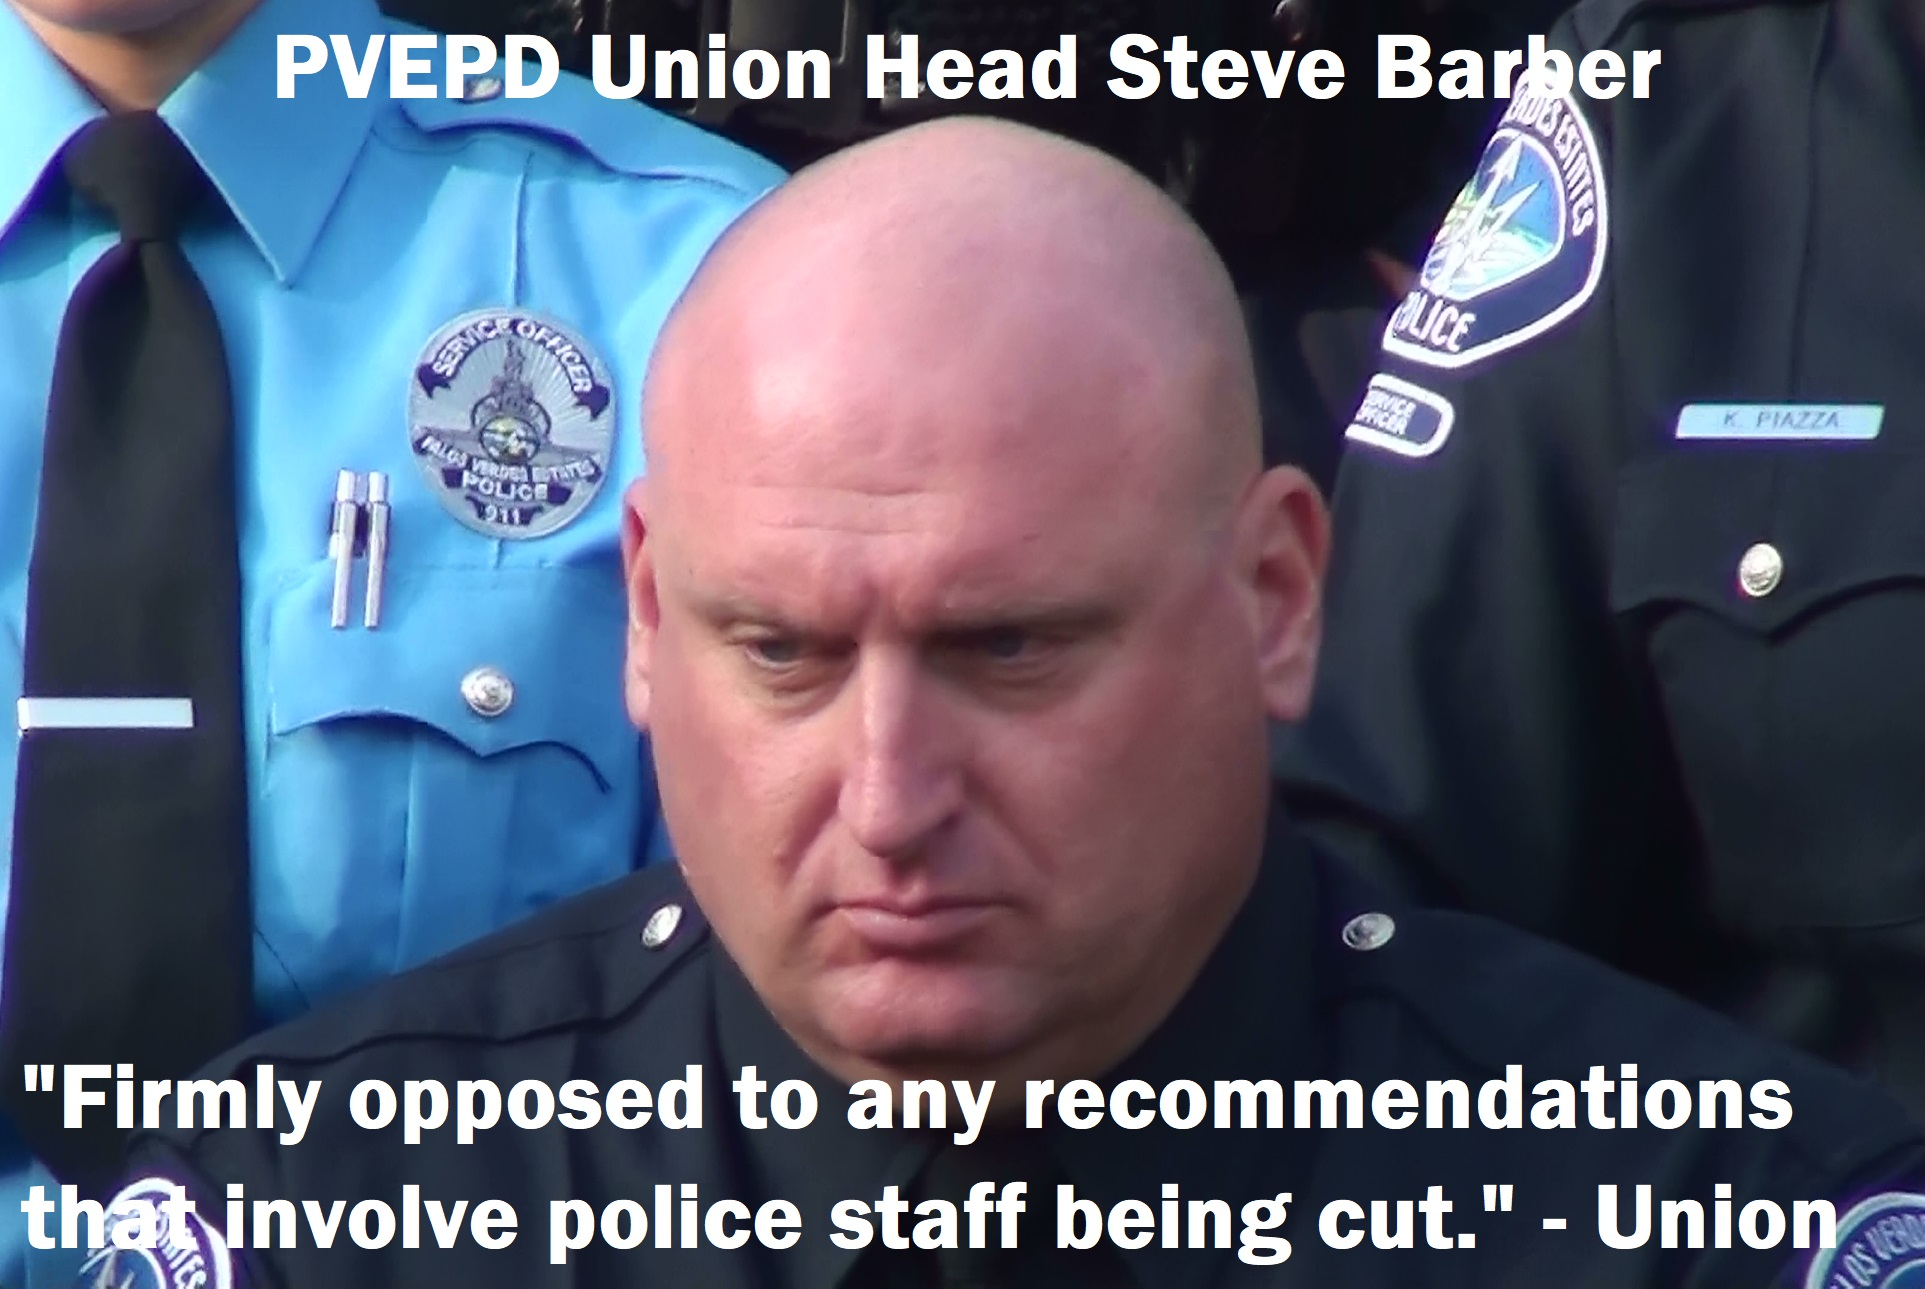 PVEPD Union Head Steve Barber: opposed any cuts to staffing at the PVE Police Department.